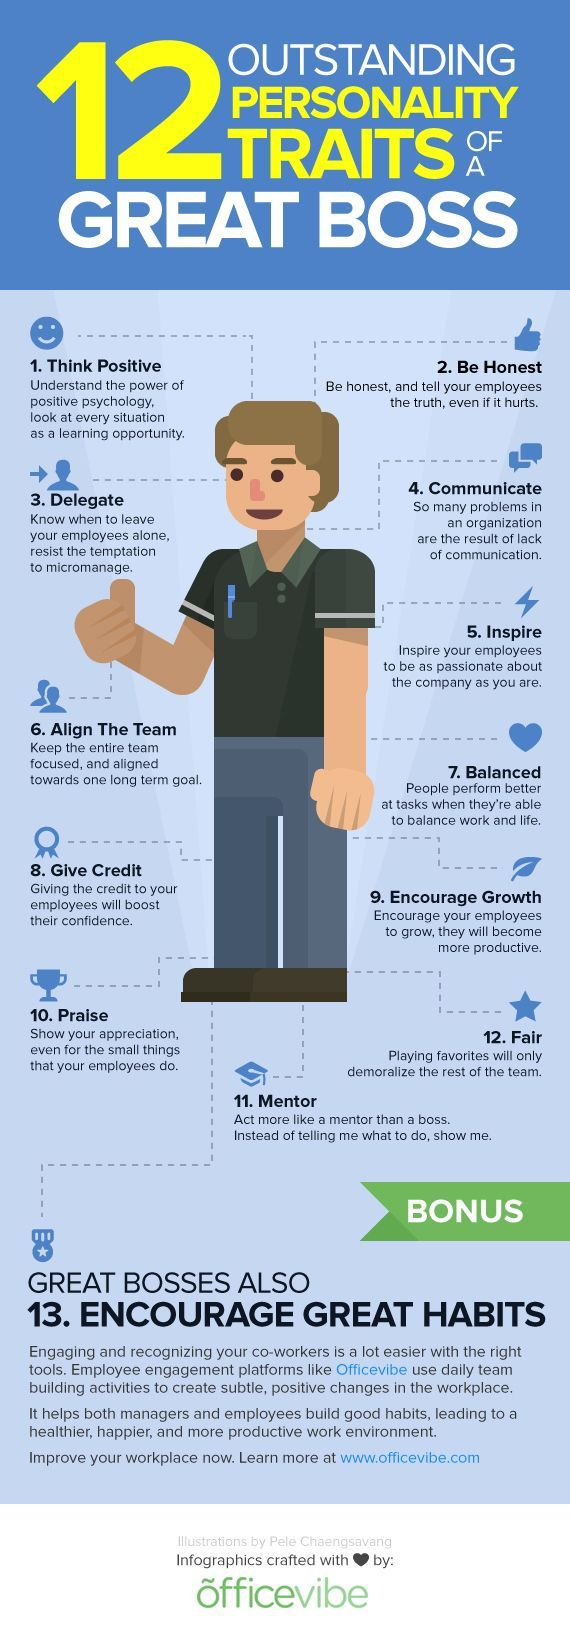 Officevibe, a company dedicated to improving corporate culture through gamification, put together an infographic summarizing what makes a good boss. From always being positive to always being honest, even when it's hard, take a look at the infographic below for an overview of the fundamental personality traits shared by good managers.  http://mrmck.wordpress.com/2014/06/22/12-outstanding-personality-traits-of-a-great-boss/